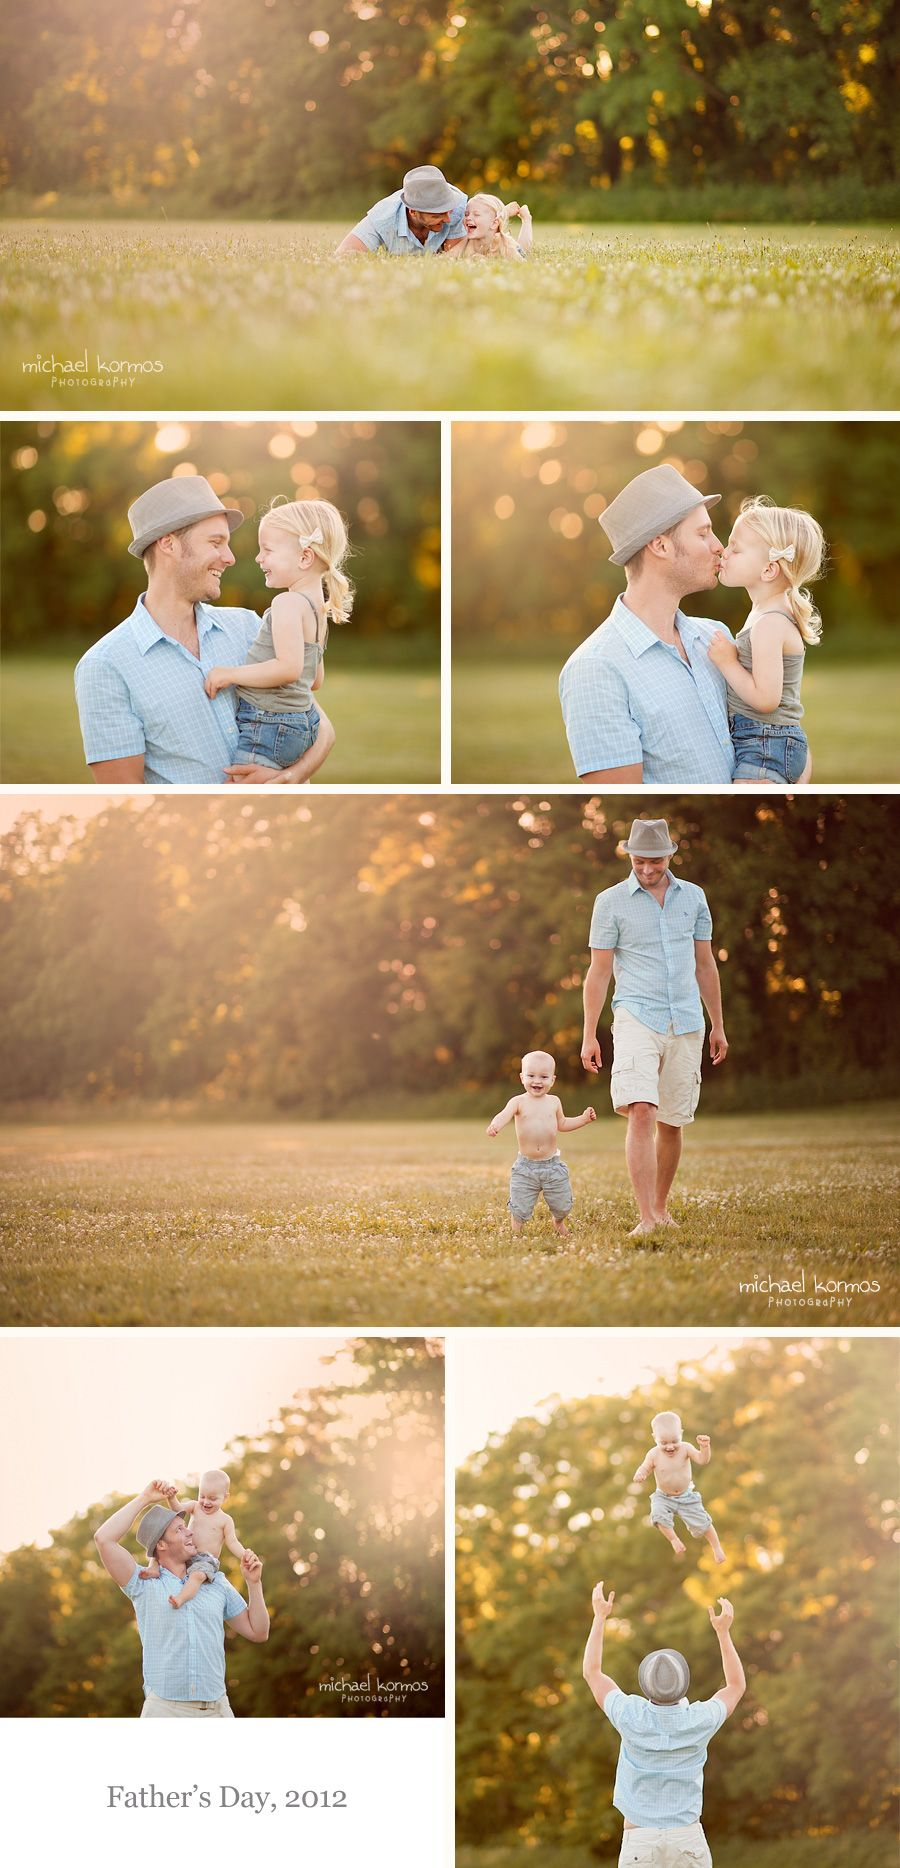 Daddy and me(nyc baby photographer, baby photography)